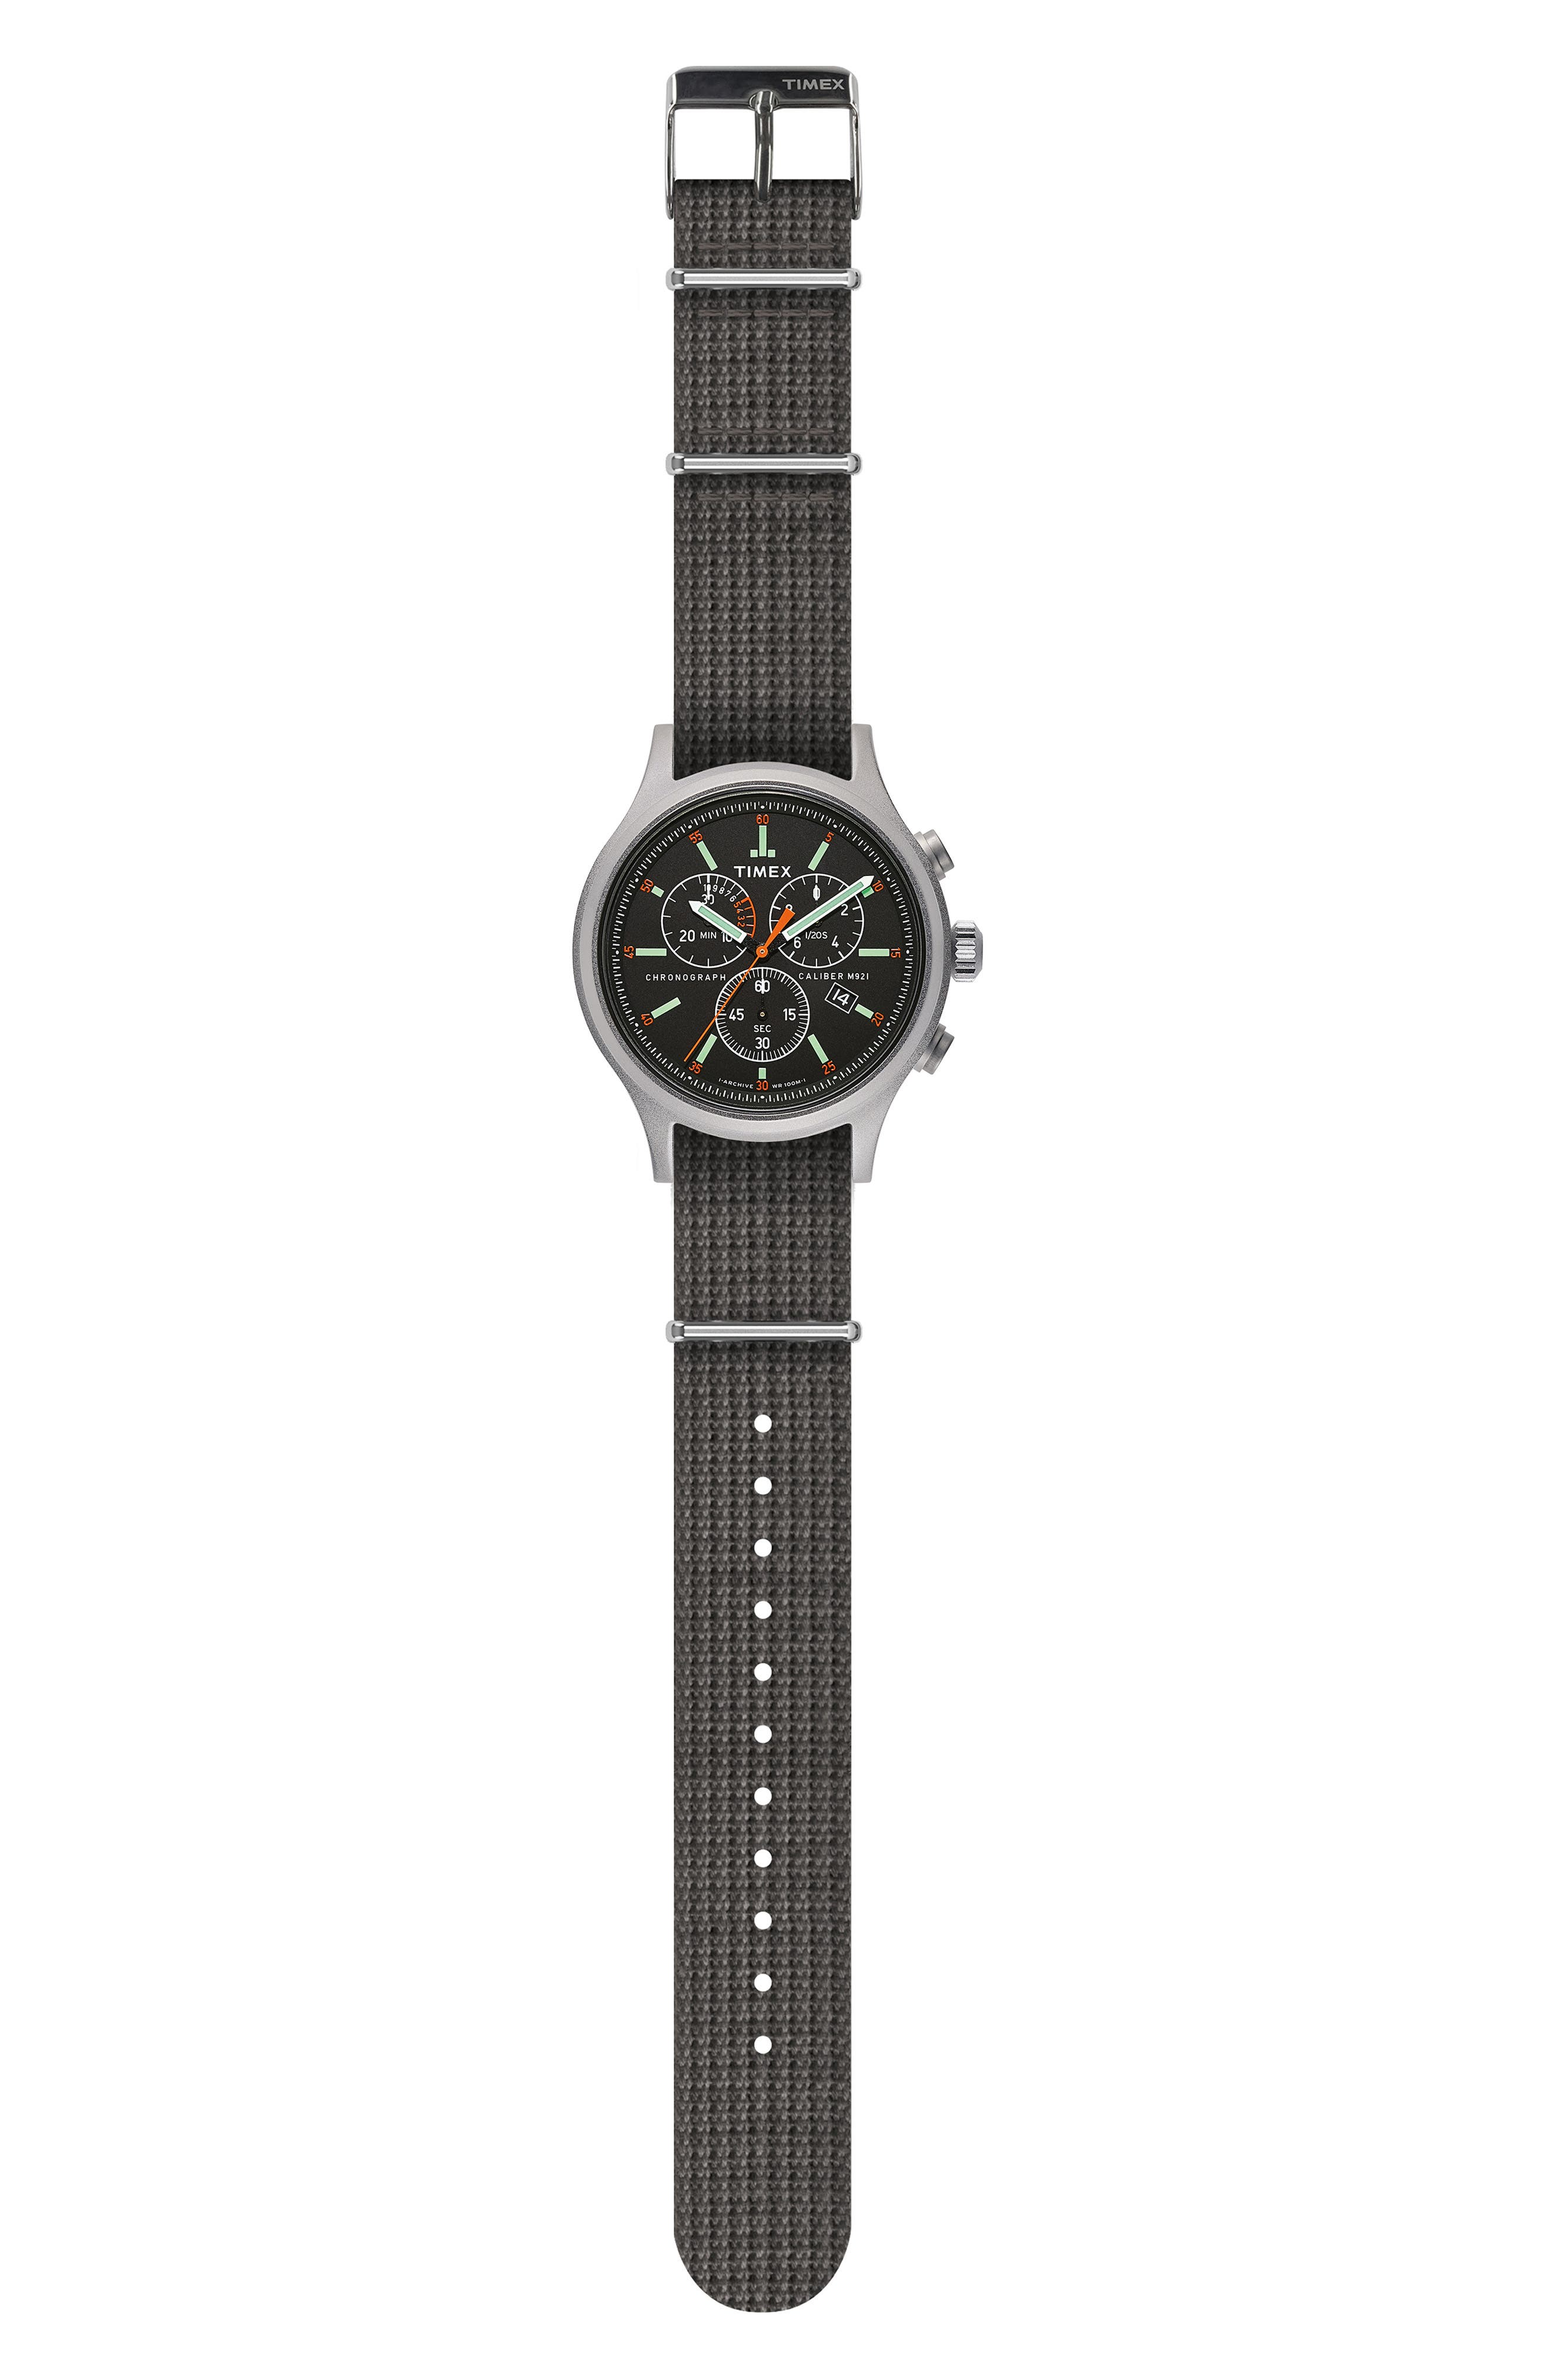 Timex<sup>®</sup> Allied Chronograph Woven Strap Watch, 41mm,                             Alternate thumbnail 2, color,                             SILVER/ BLACK/ GREY